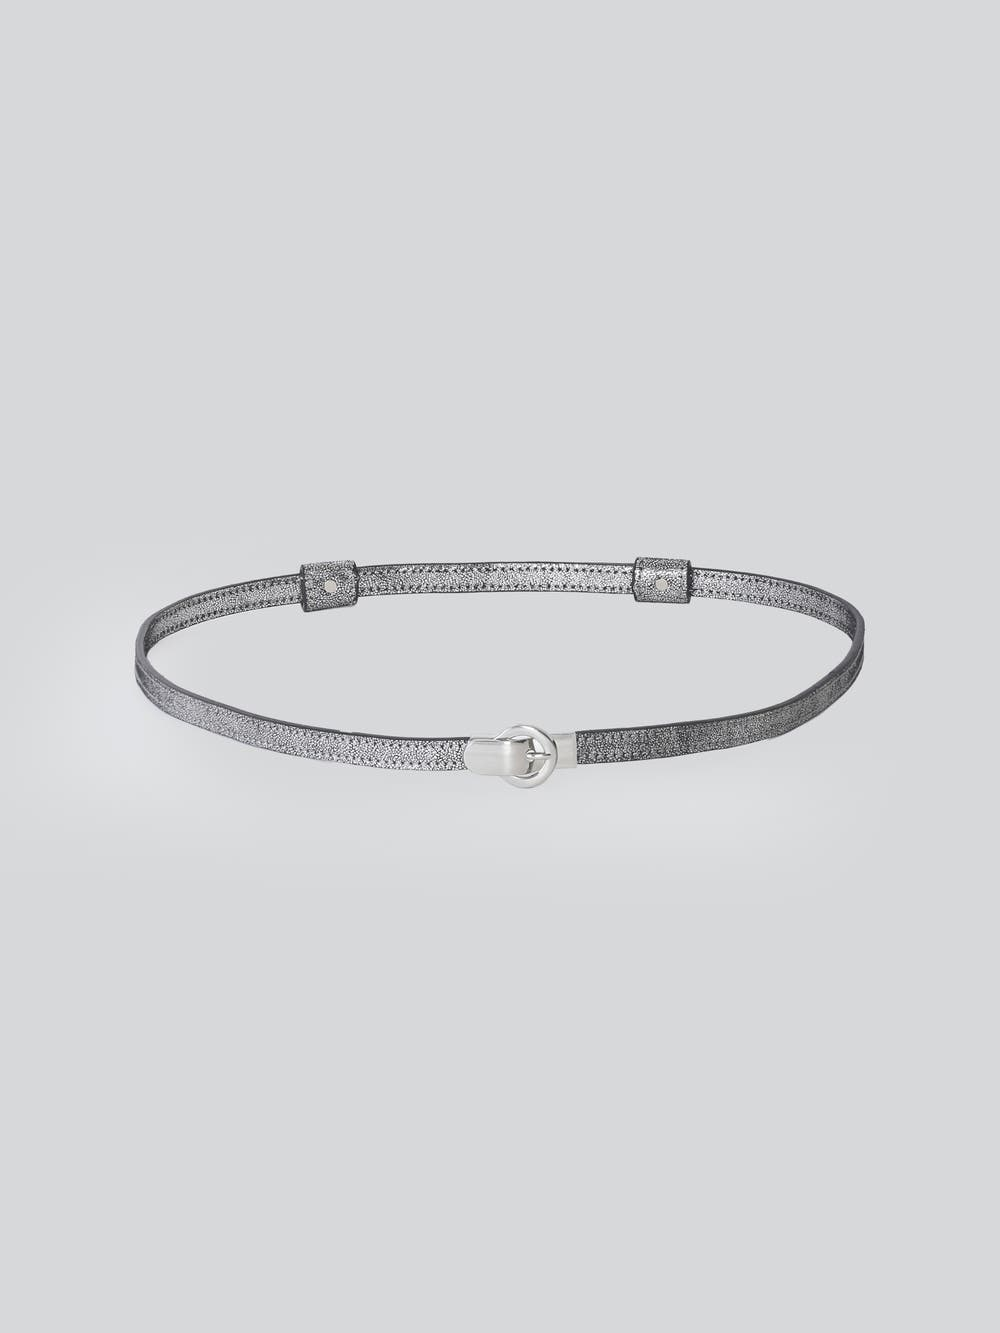 Silver Adjustable Belt